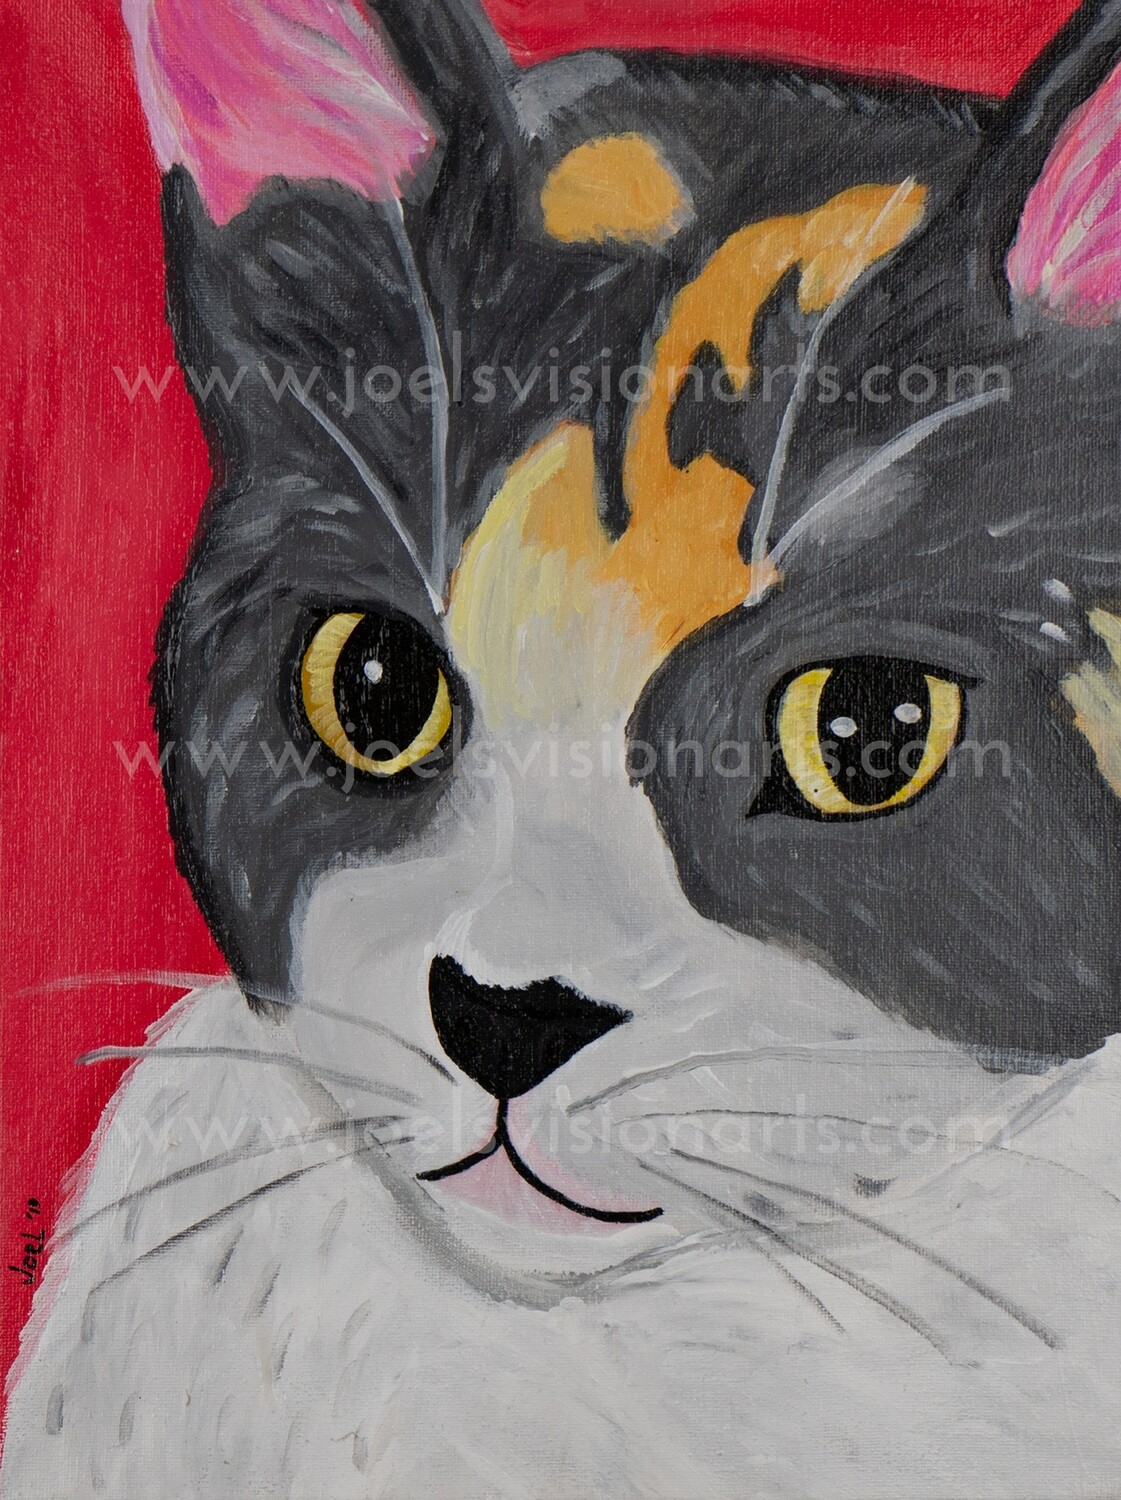 Kitty Cat in Red